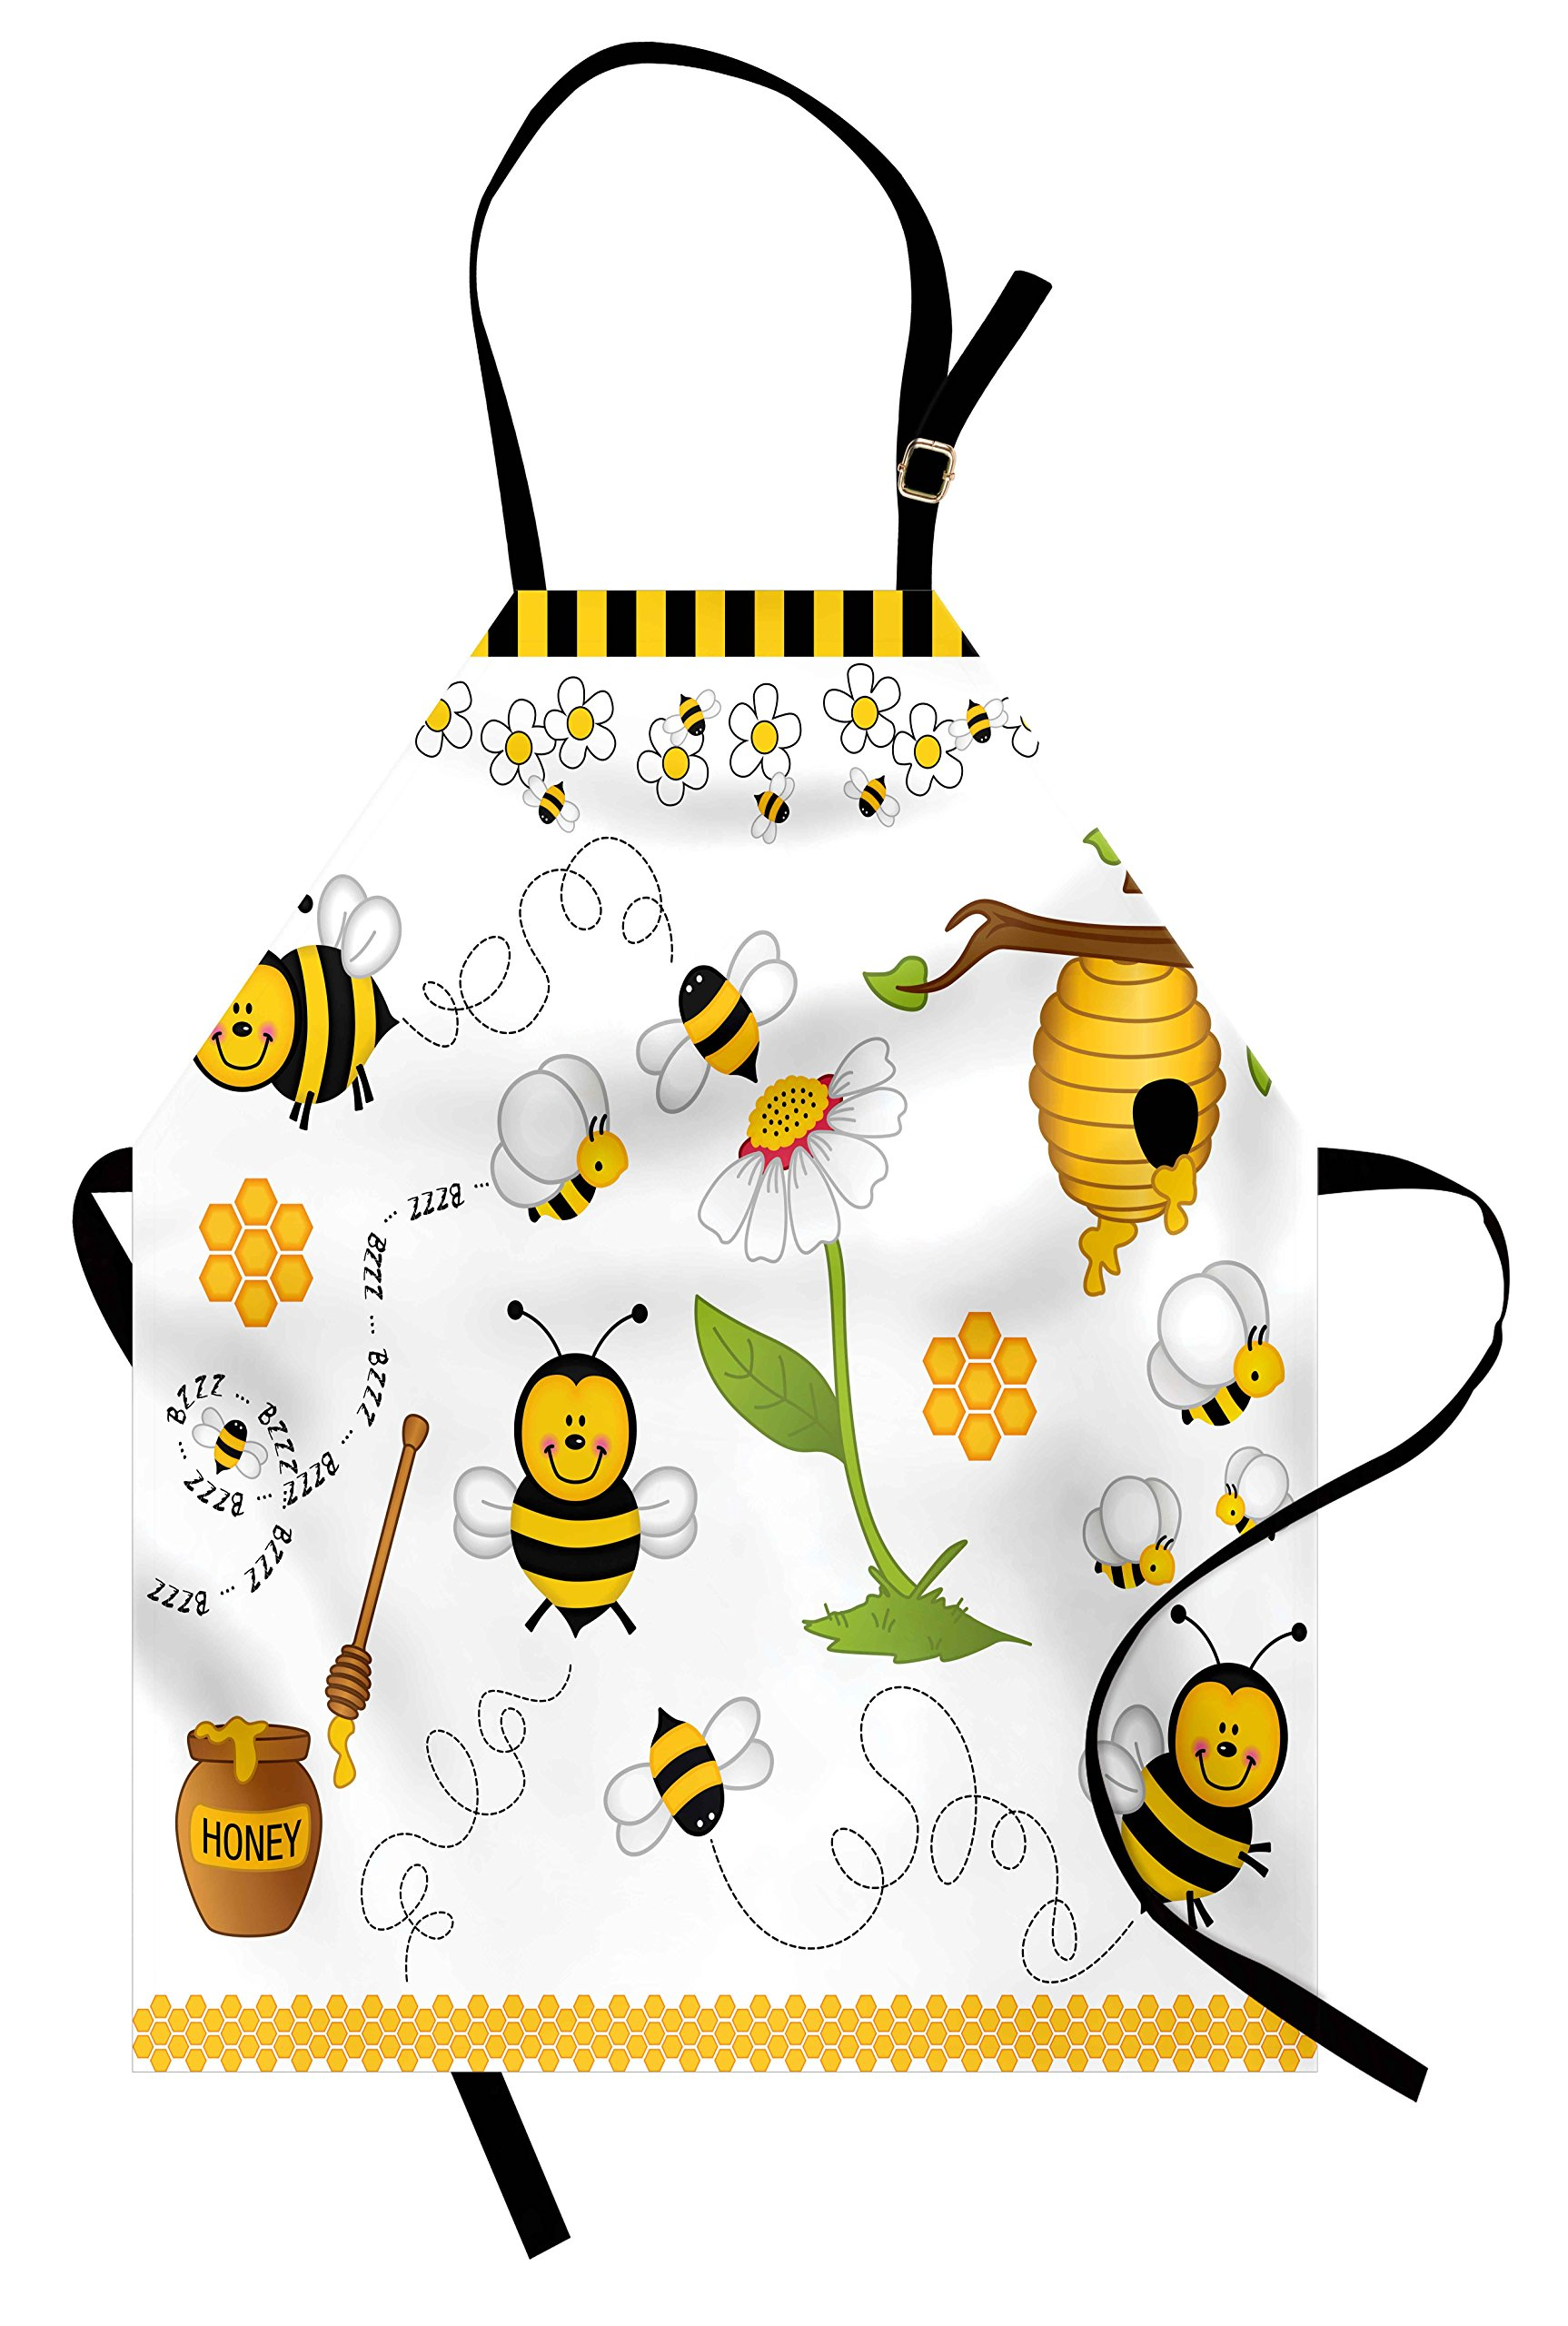 Ambesonne Collage Apron, Flying Bees Daisy Honey Chamomile Flowers Pollen Springtime Animal Print, Unisex Kitchen Bib Apron with Adjustable Neck for Cooking Baking Gardening, Yellow White Black